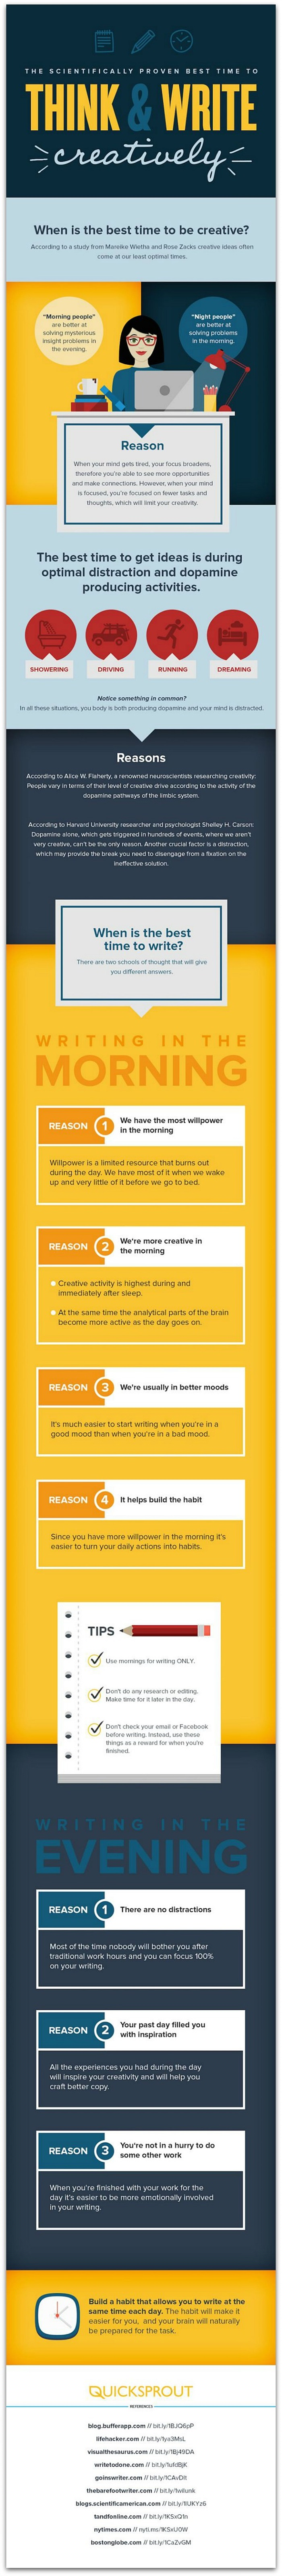 Scientific_Best_Time_to_Write_Be_Creative_Infographic